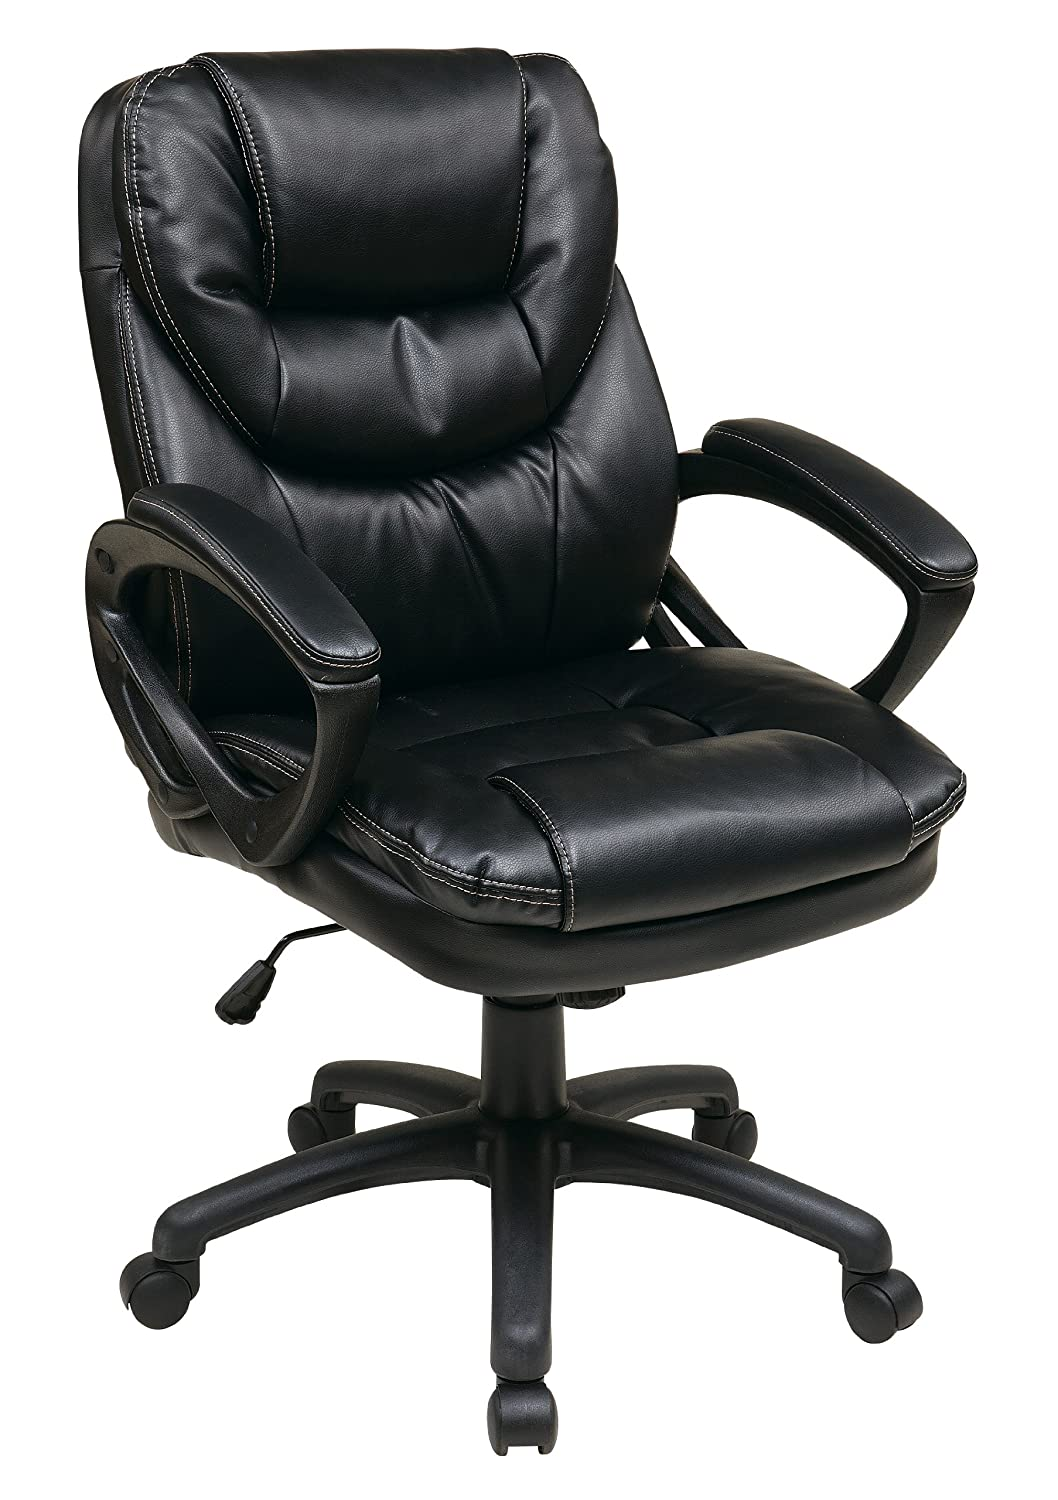 Back Support Office Chair Best Office Chair For Lumbar Support Reviews And Comparison